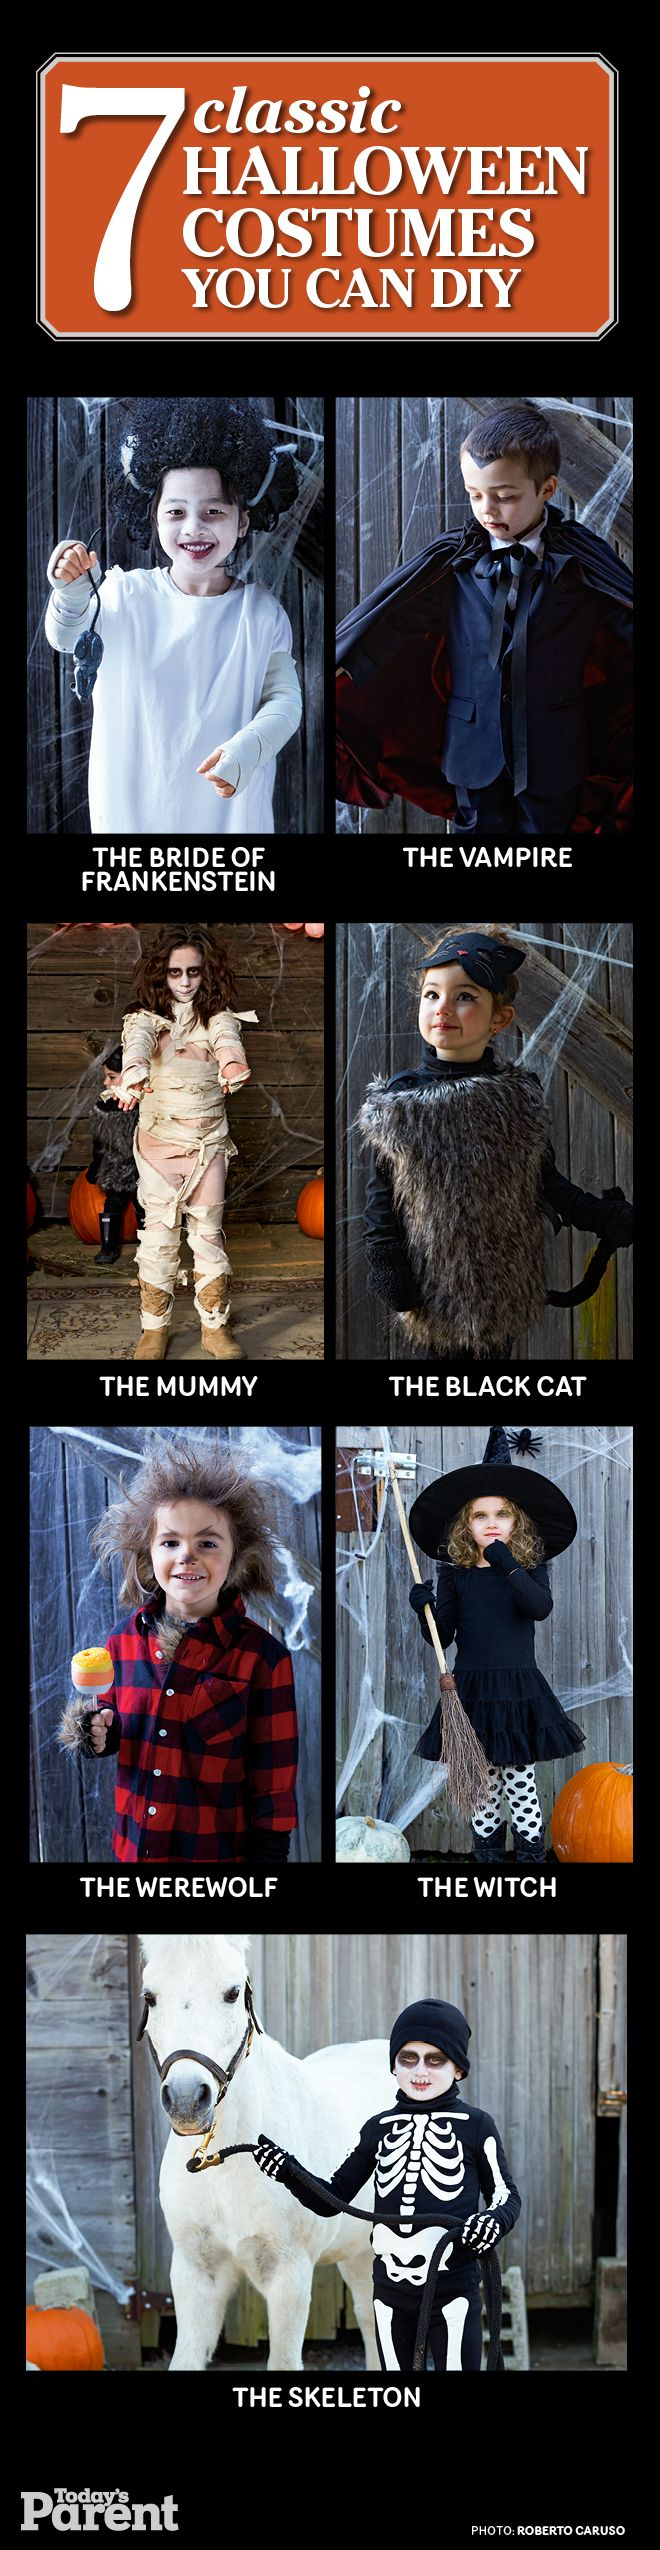 Get instructions on how to DIY these 7 classic Halloween kid costumes!: